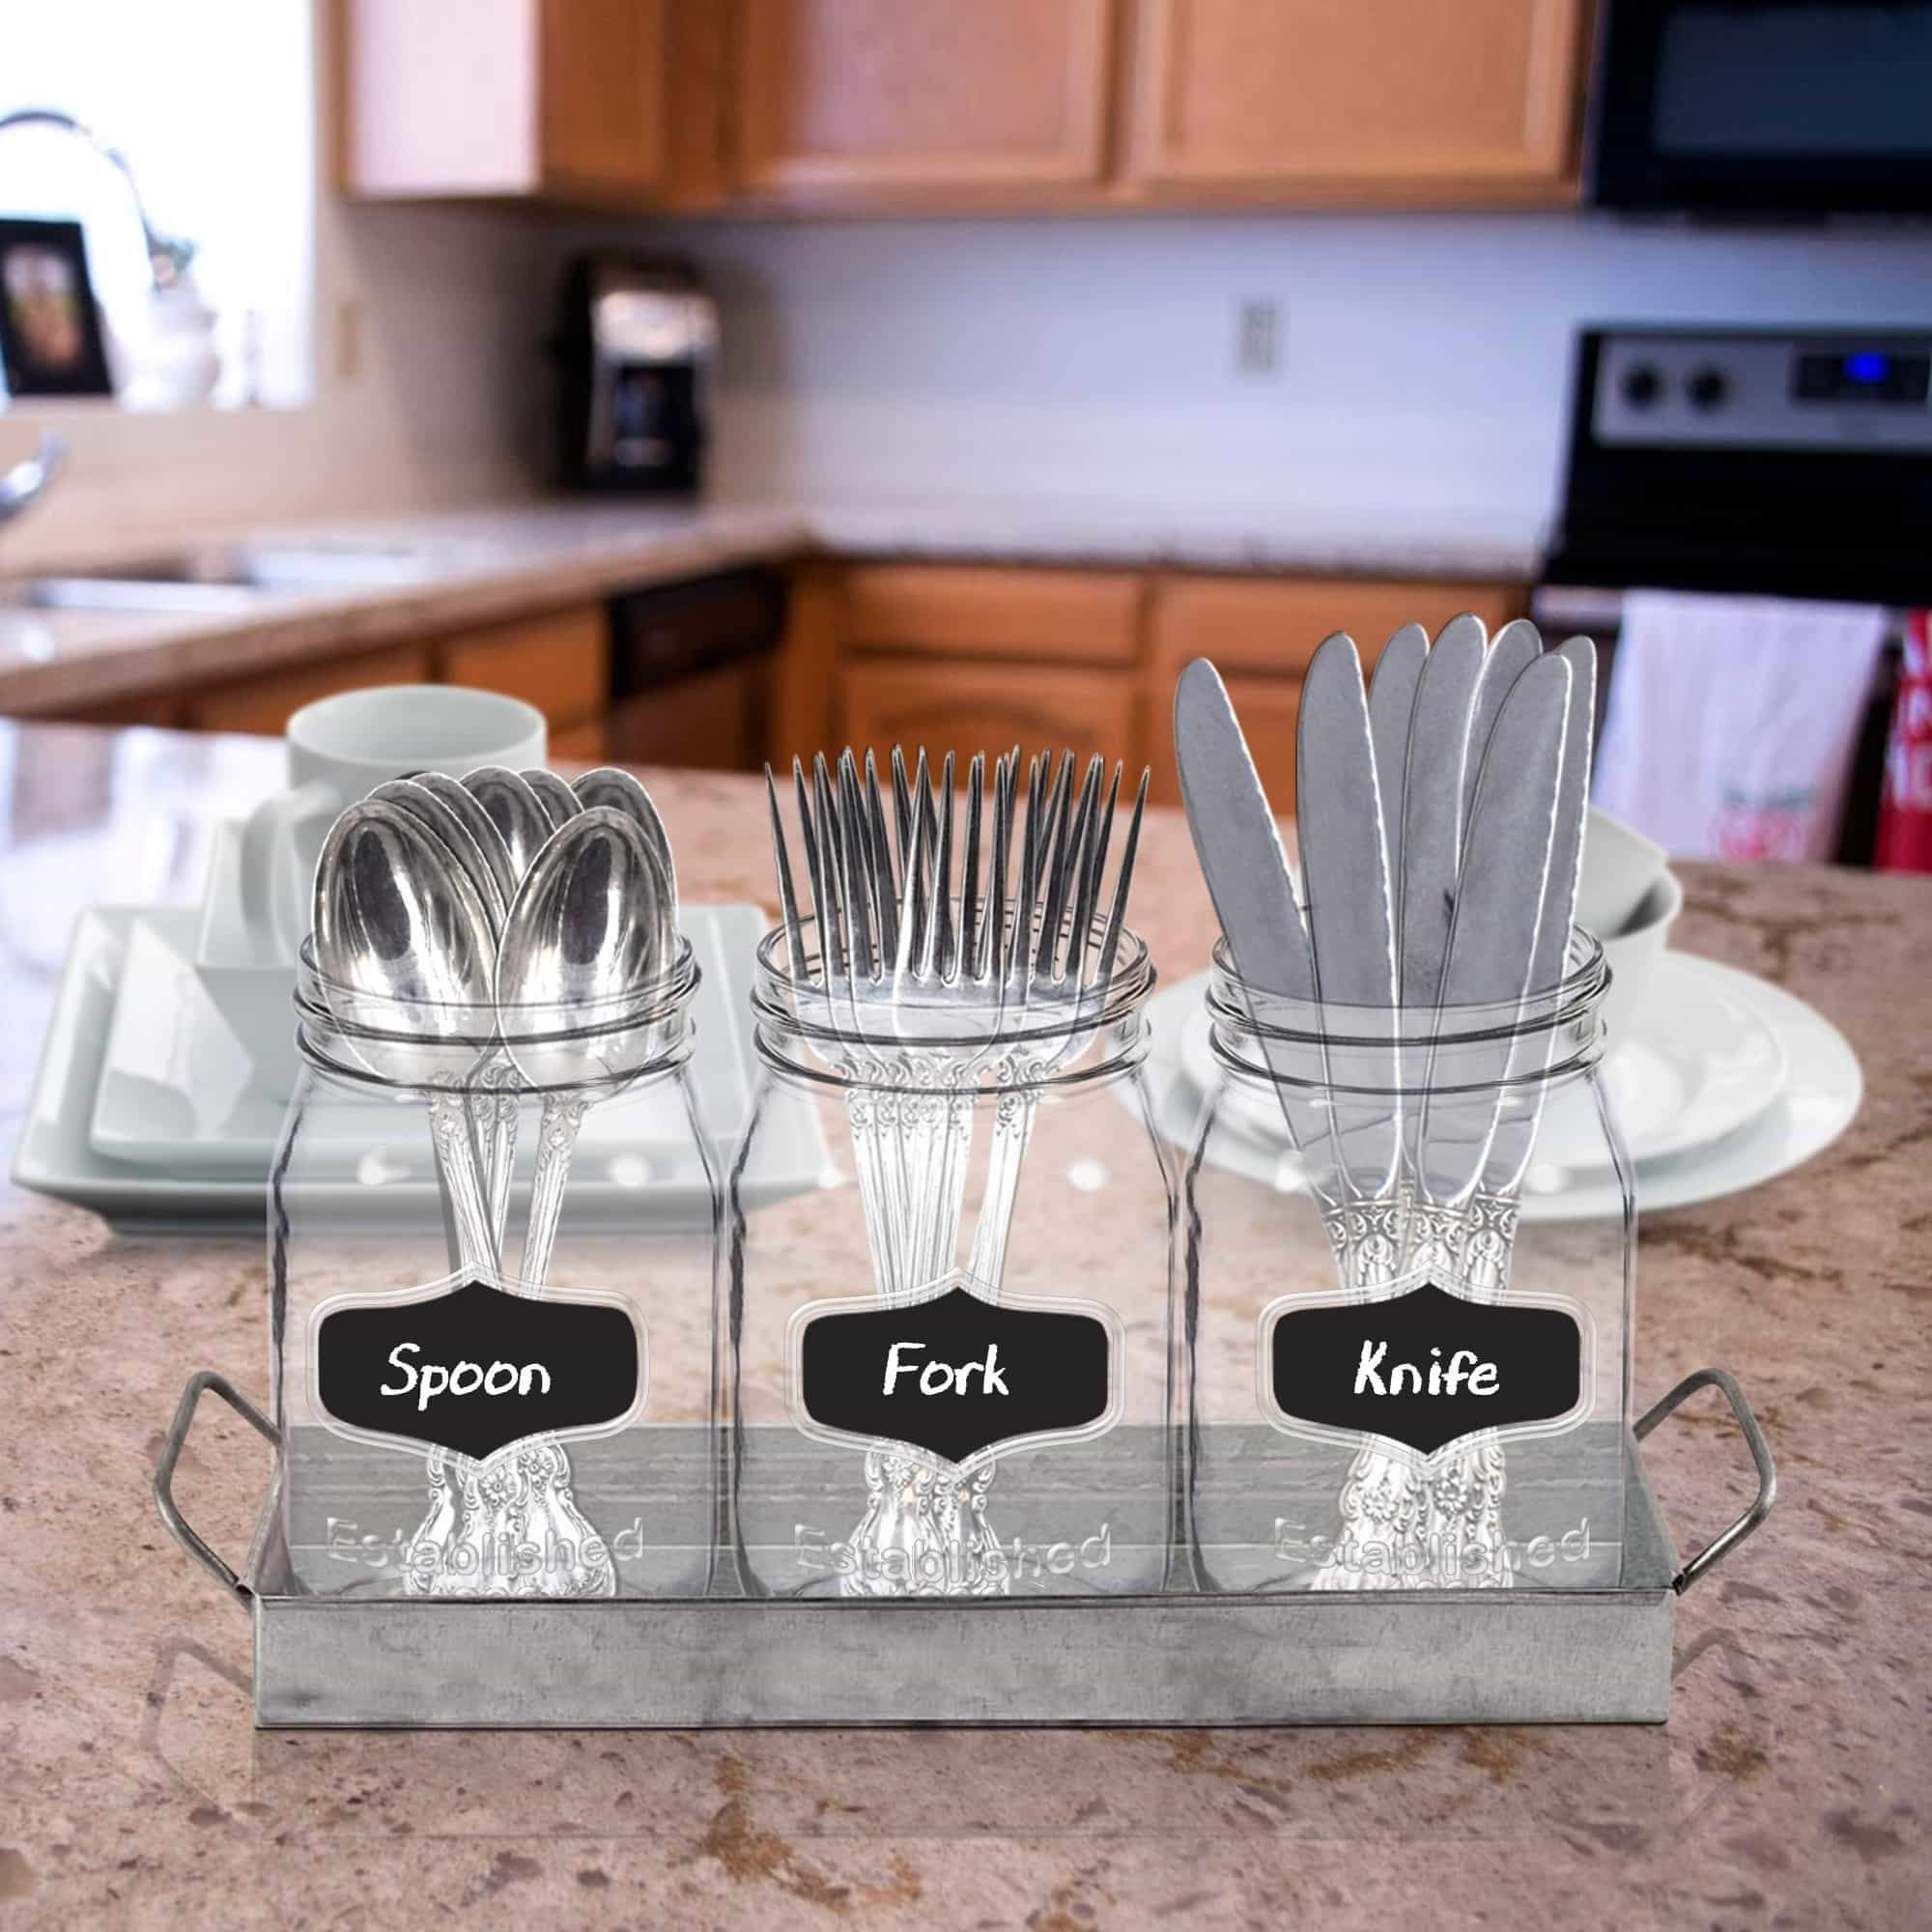 Storage organizer 3 glass mason jars with black chalk label 17 ounces clear chalkboard mugs on galvanized caddy with handle home and party drinkware set utensil organizer vintage rustic decor set